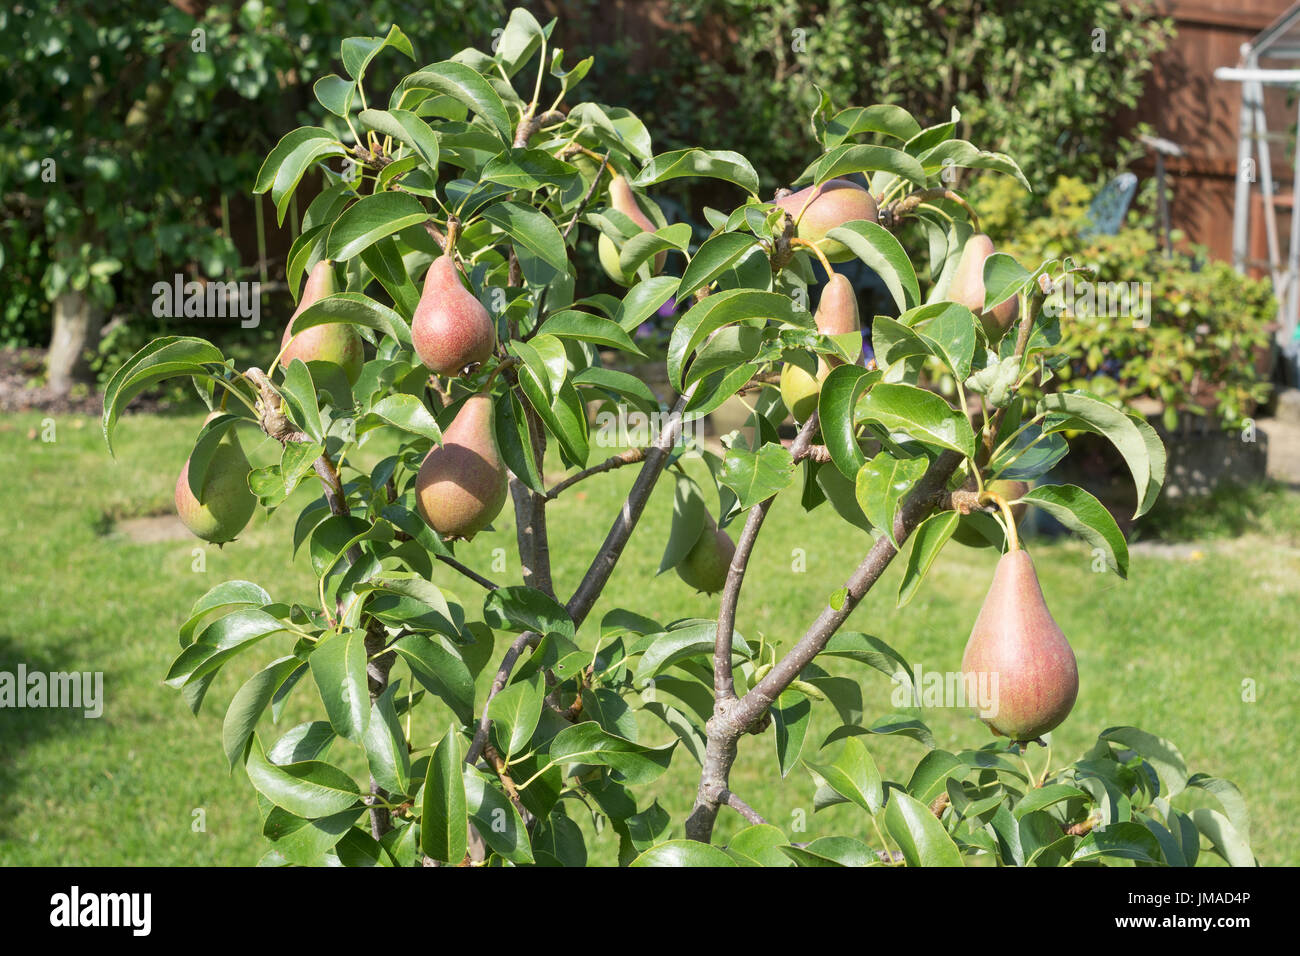 Ripening fruit on pear tree (Pyrus communis) Concorde, north east England, UK - Stock Image